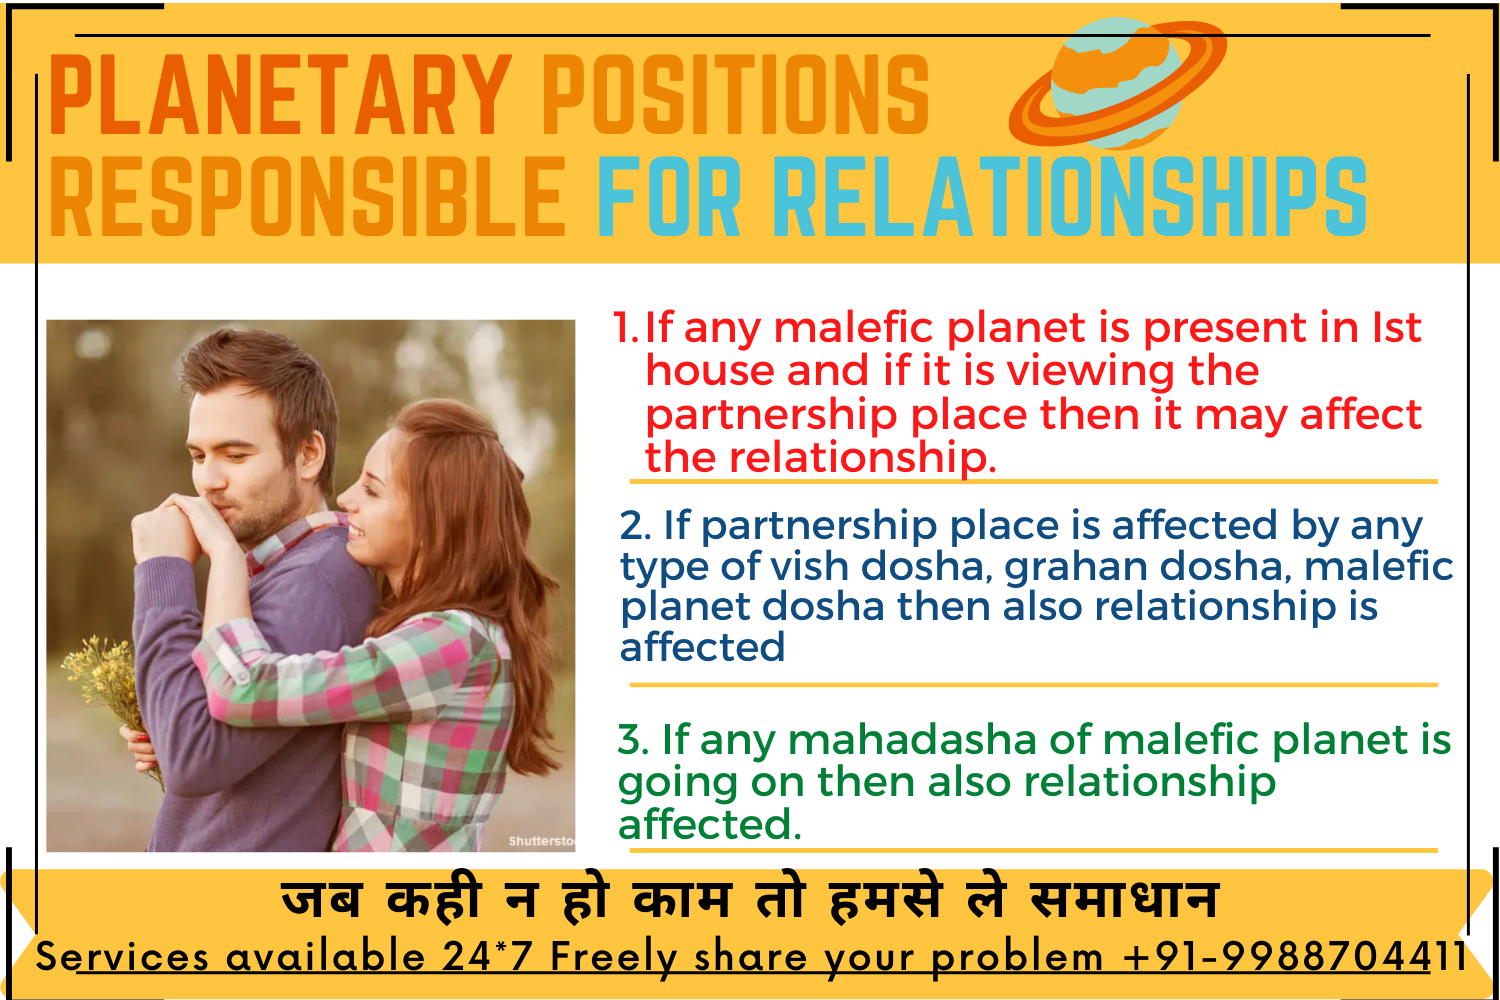 Planetary Positions Responsible For Relationships